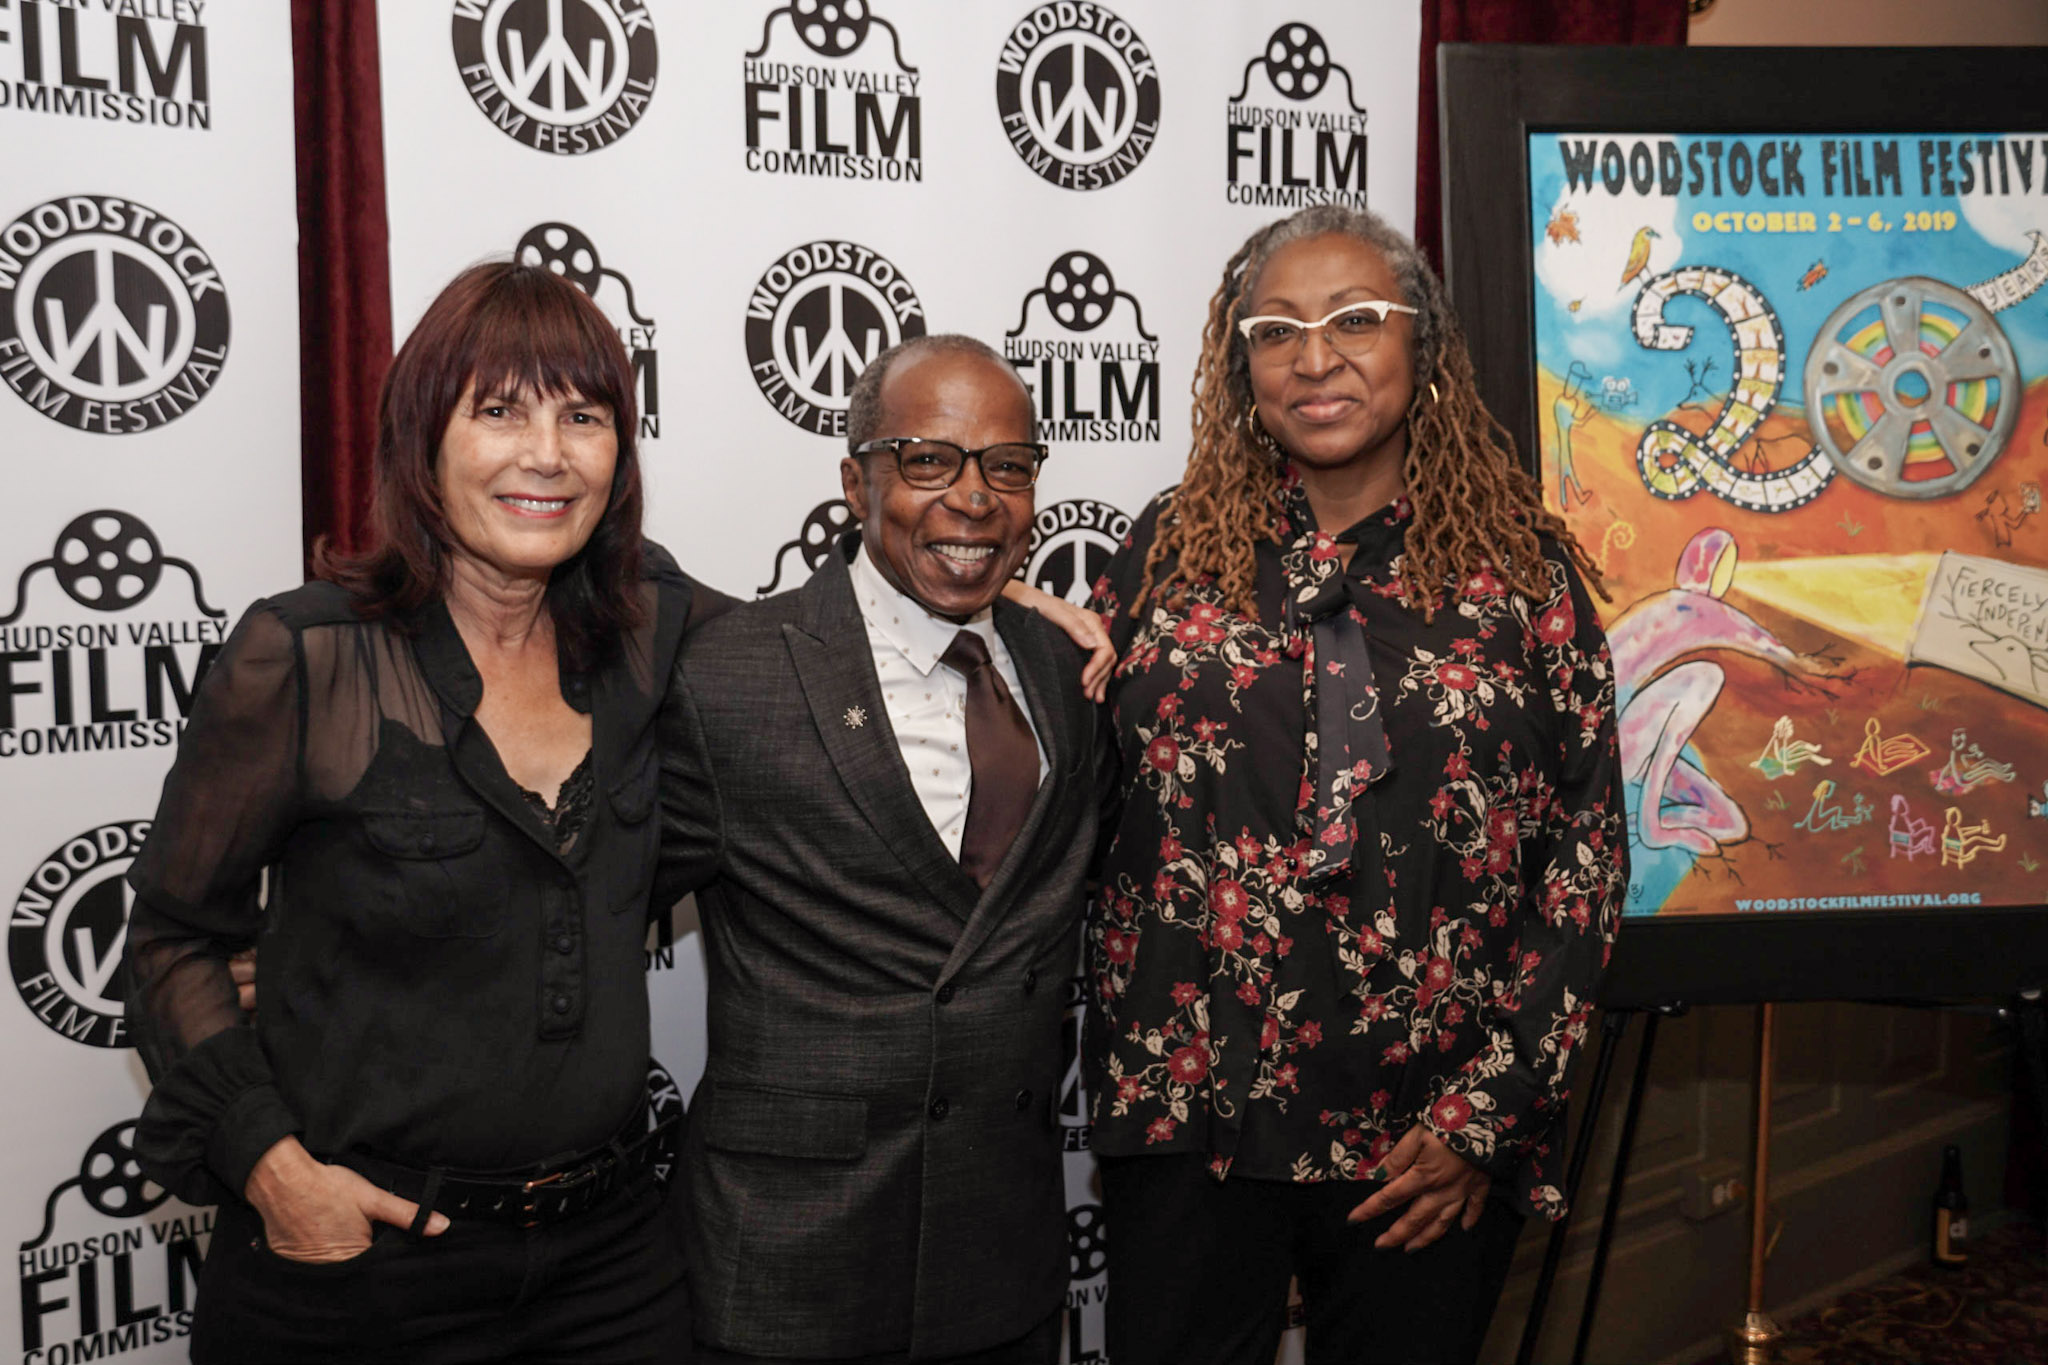 (From left) Woodstock Film Festival co-founder and executive director Meira Blaustein with Billy Mitchell and Lisa Cortes